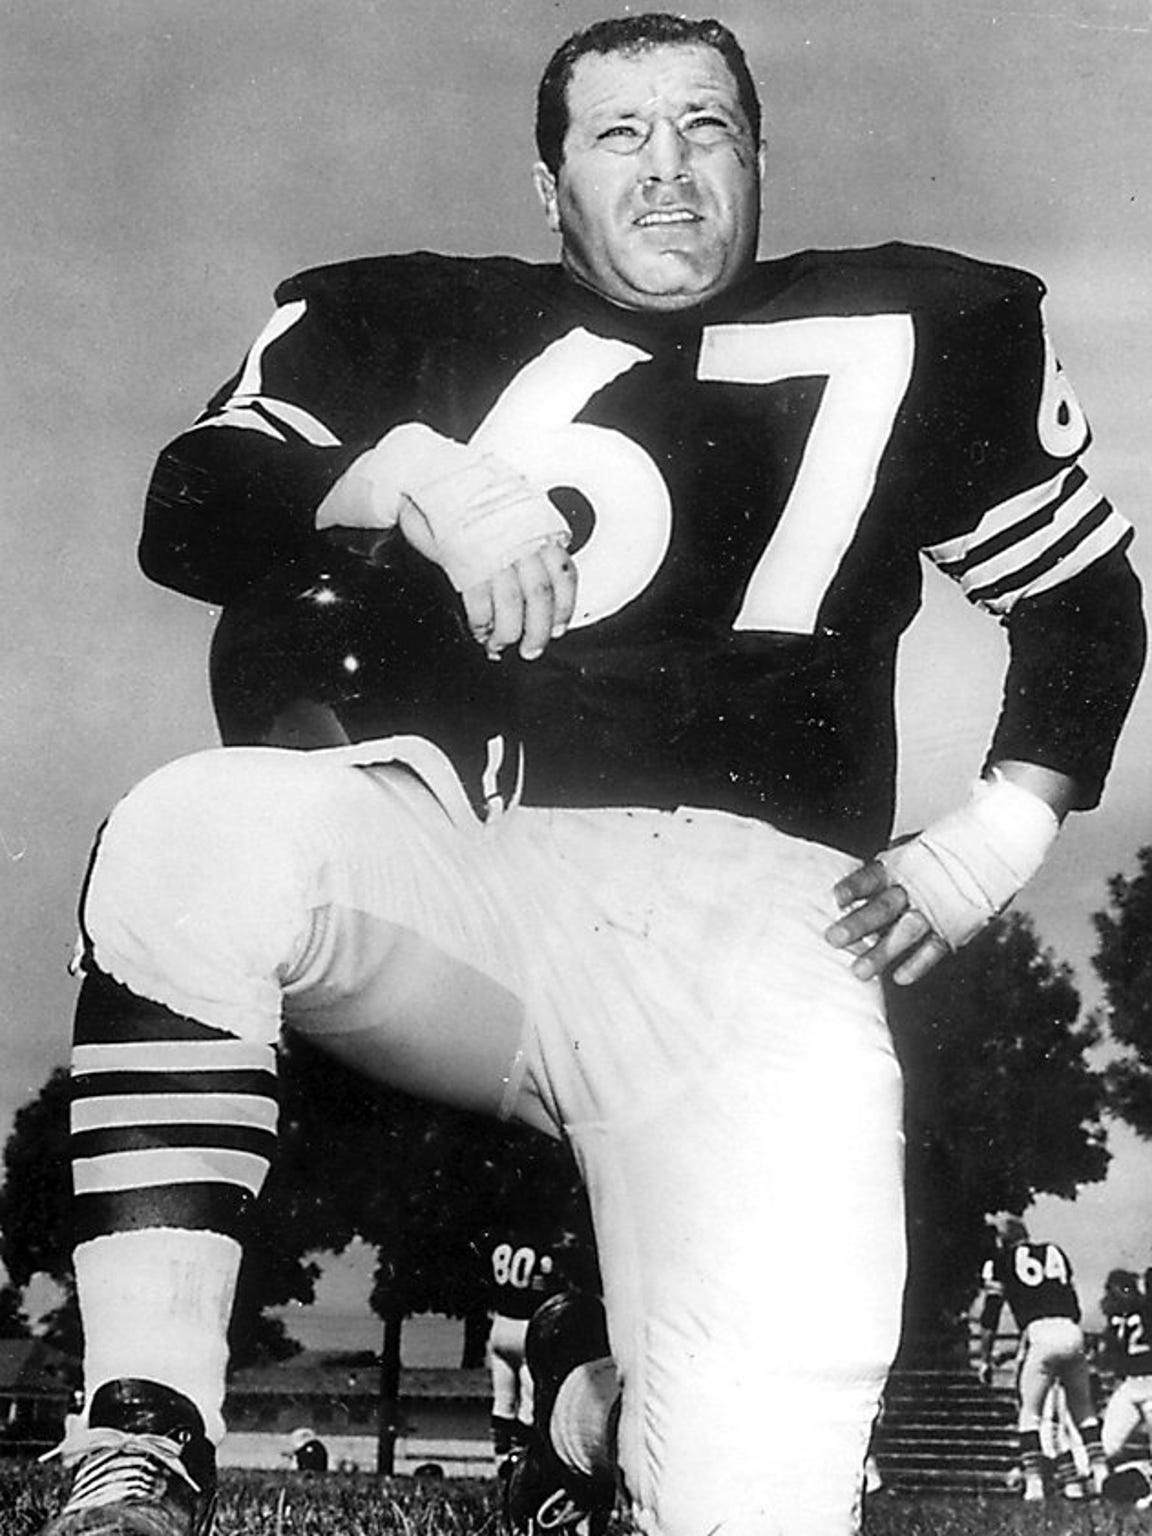 Don Manoukian was an All-American football player at